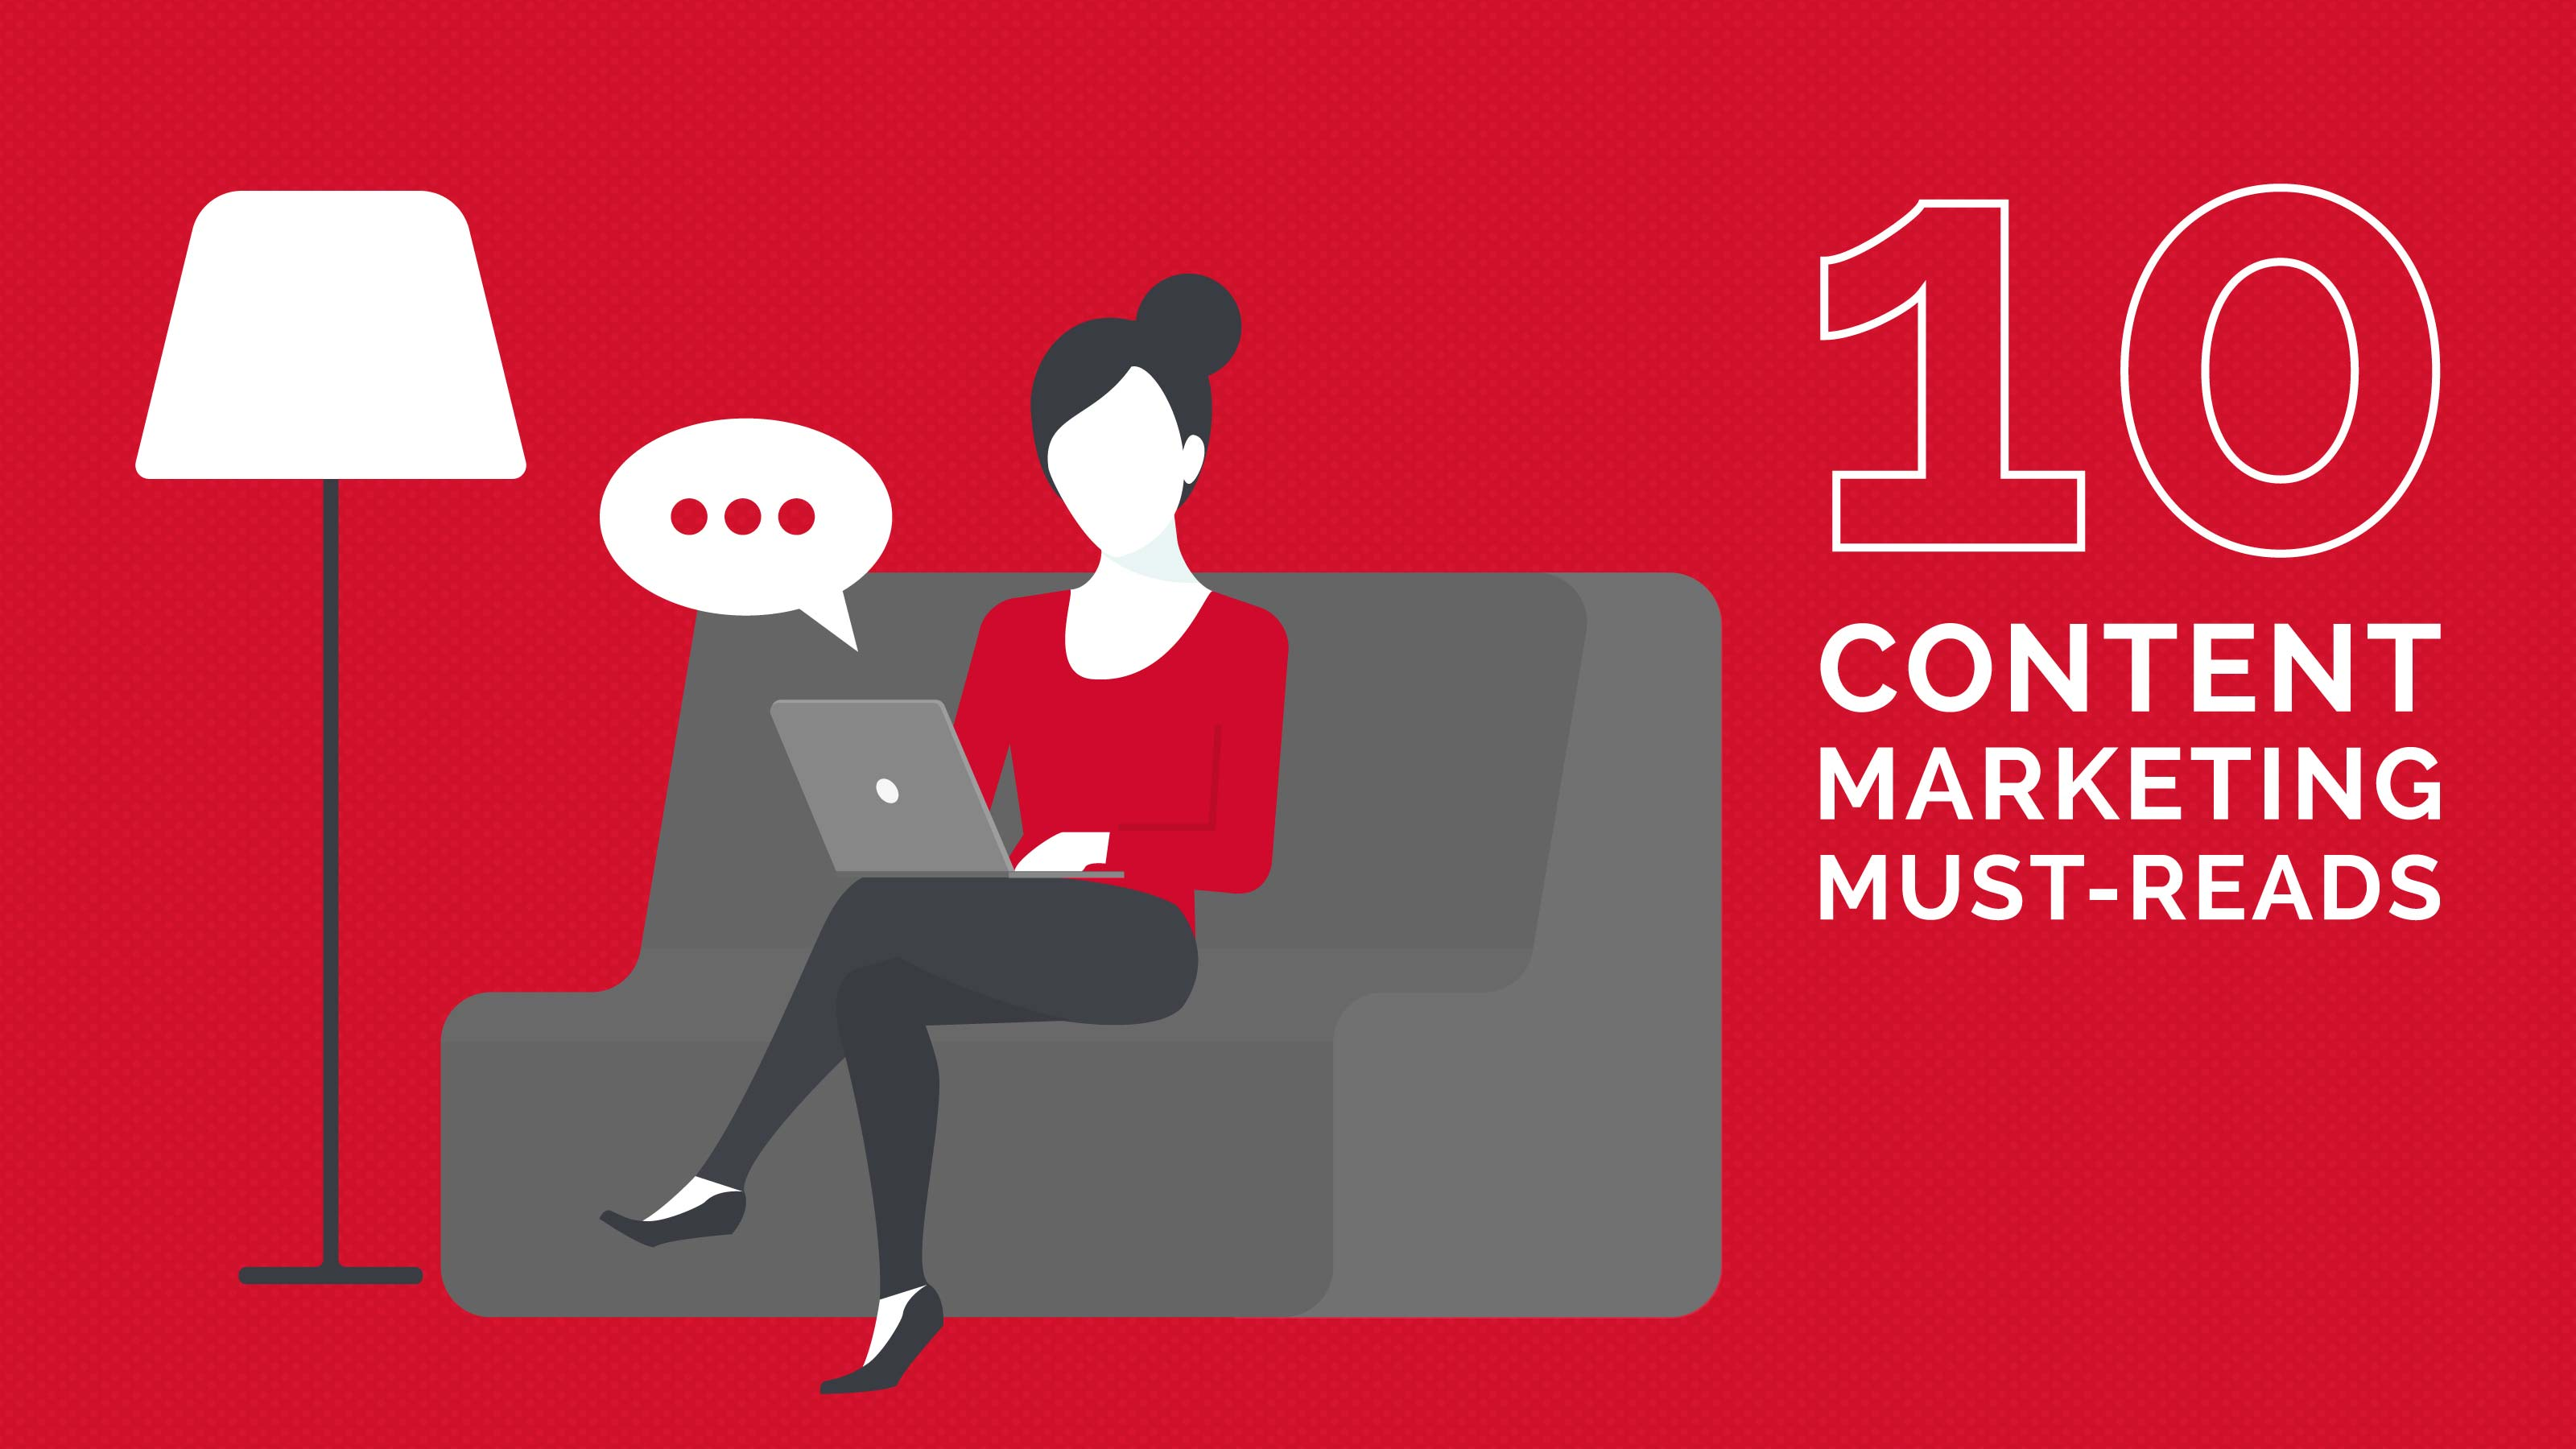 10 Content Marketing Must-Reads